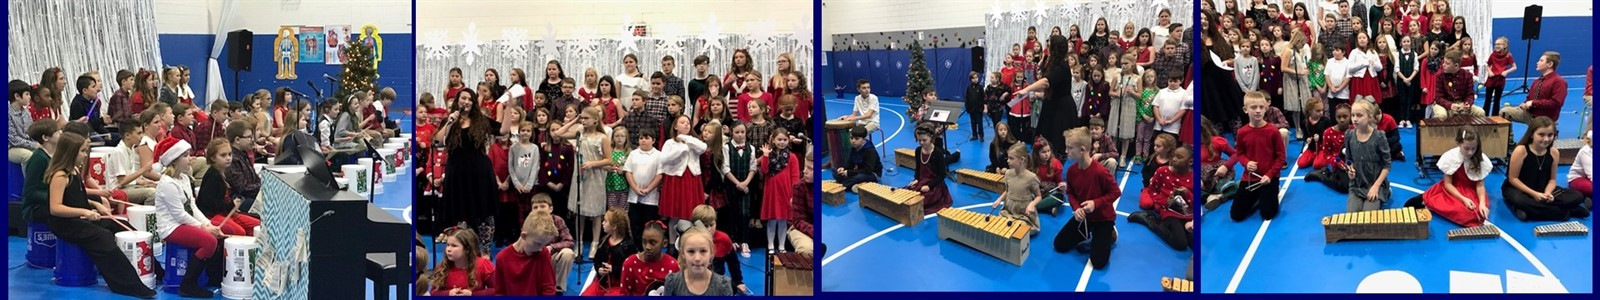 2019 SCES Christmas Concert